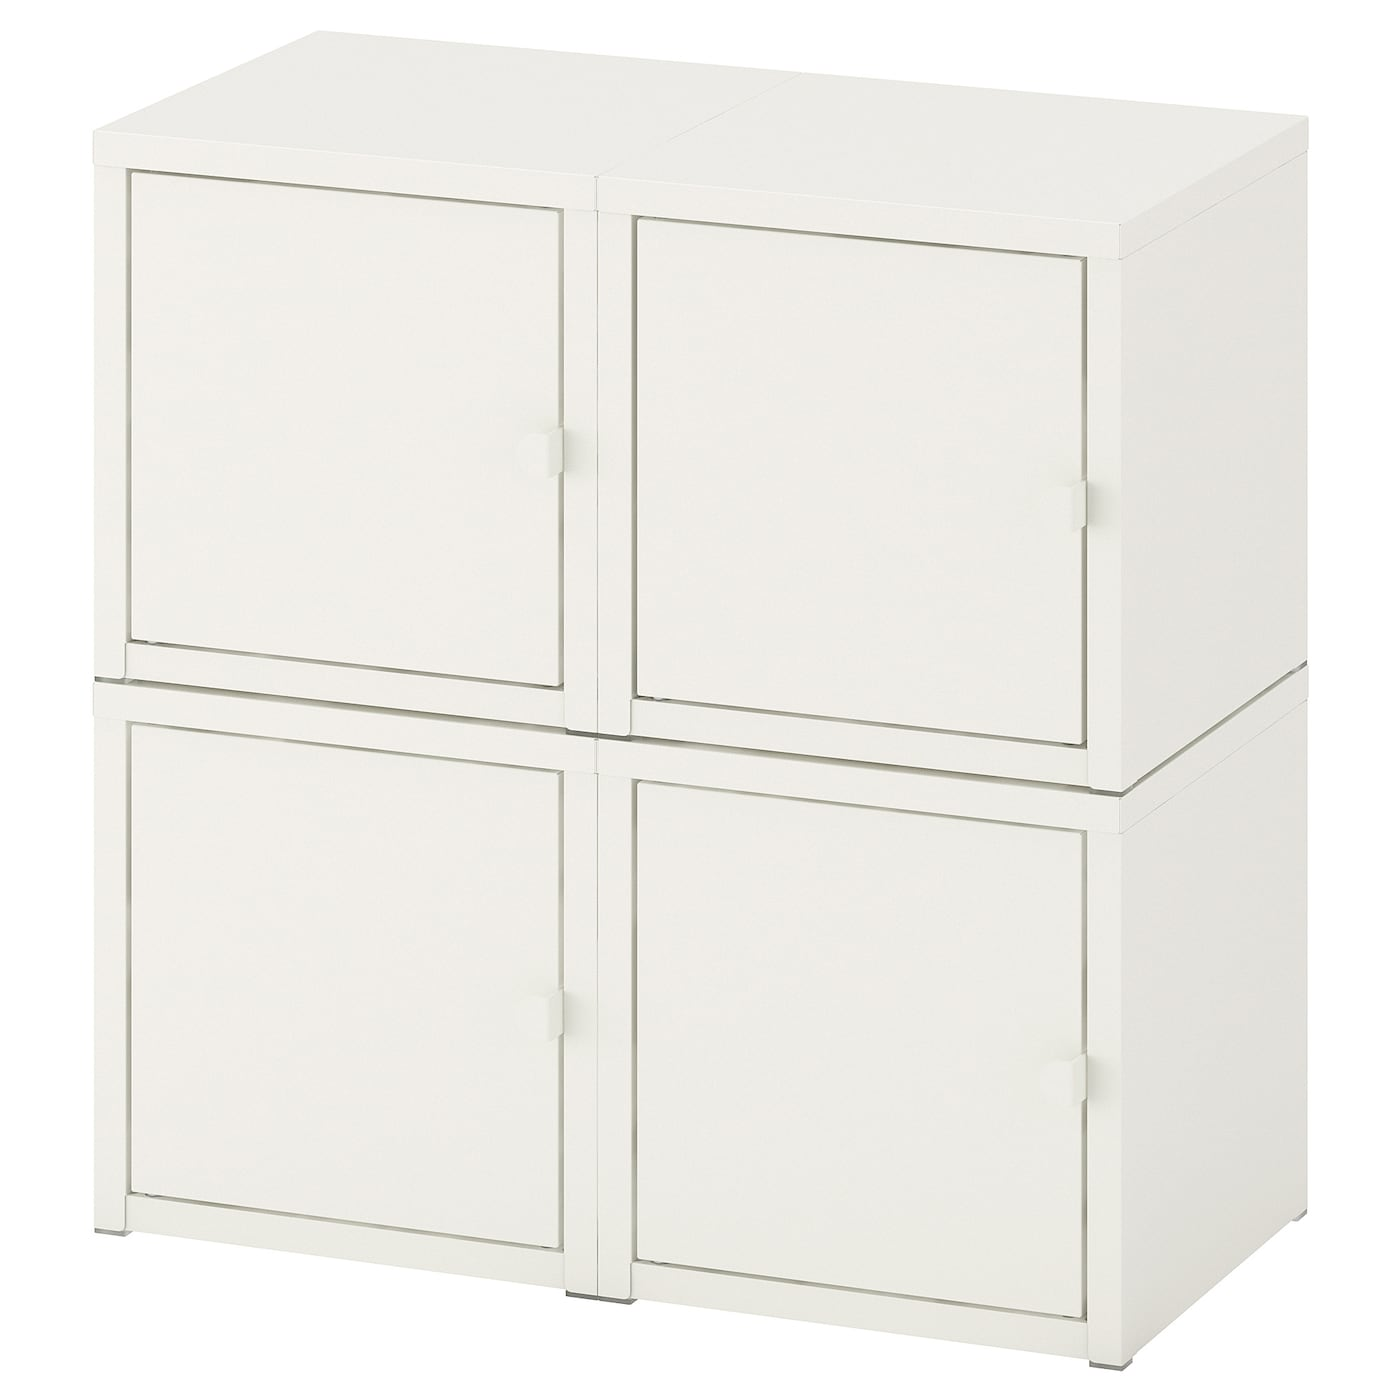 Lixhult Wall Mounted Cabinet Combination White 50x25x50 Cm